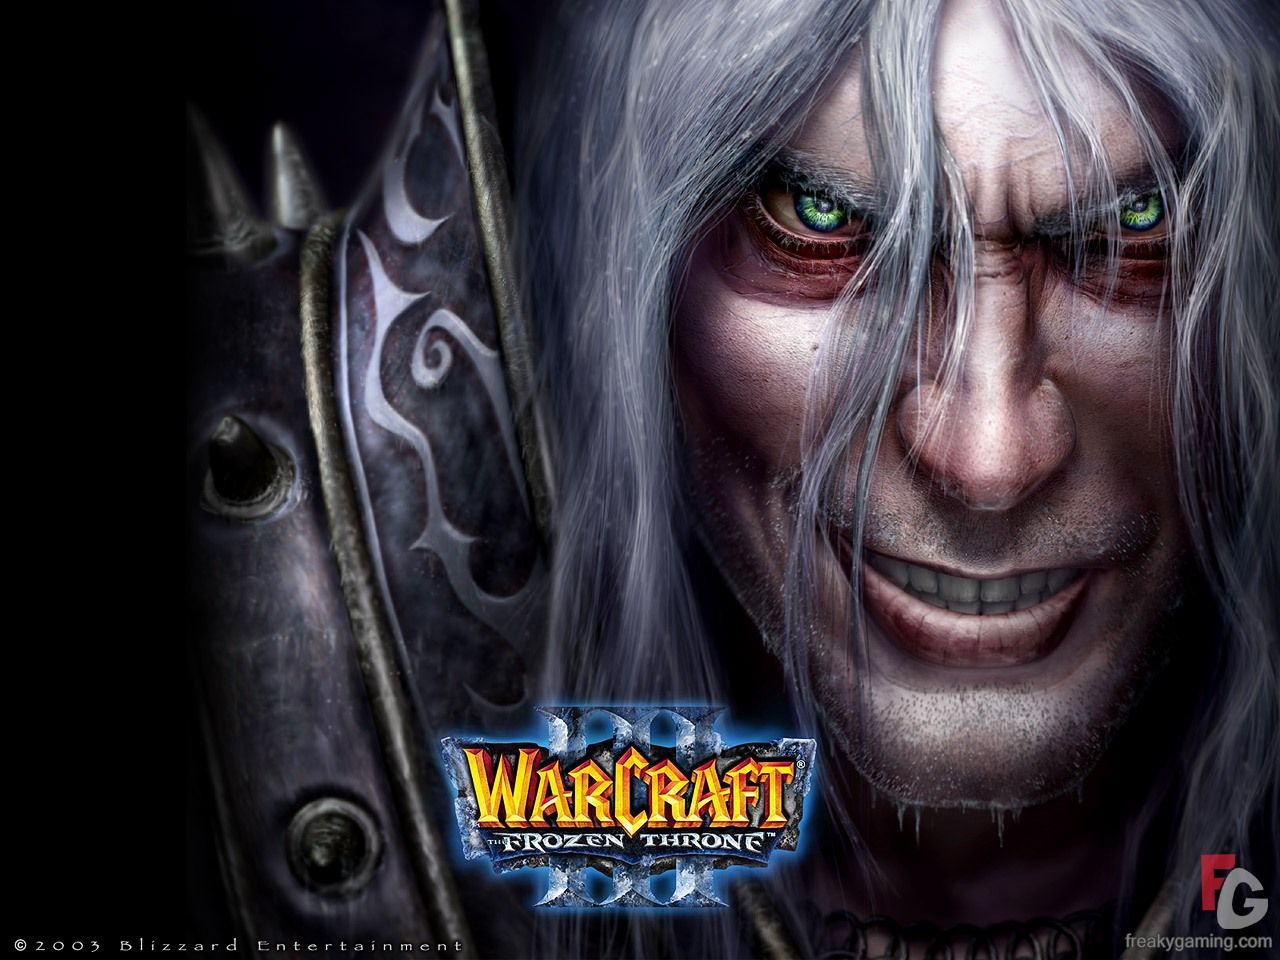 Warcraft 3 Frozen Throne Hd Wallpapers These Wallpaper